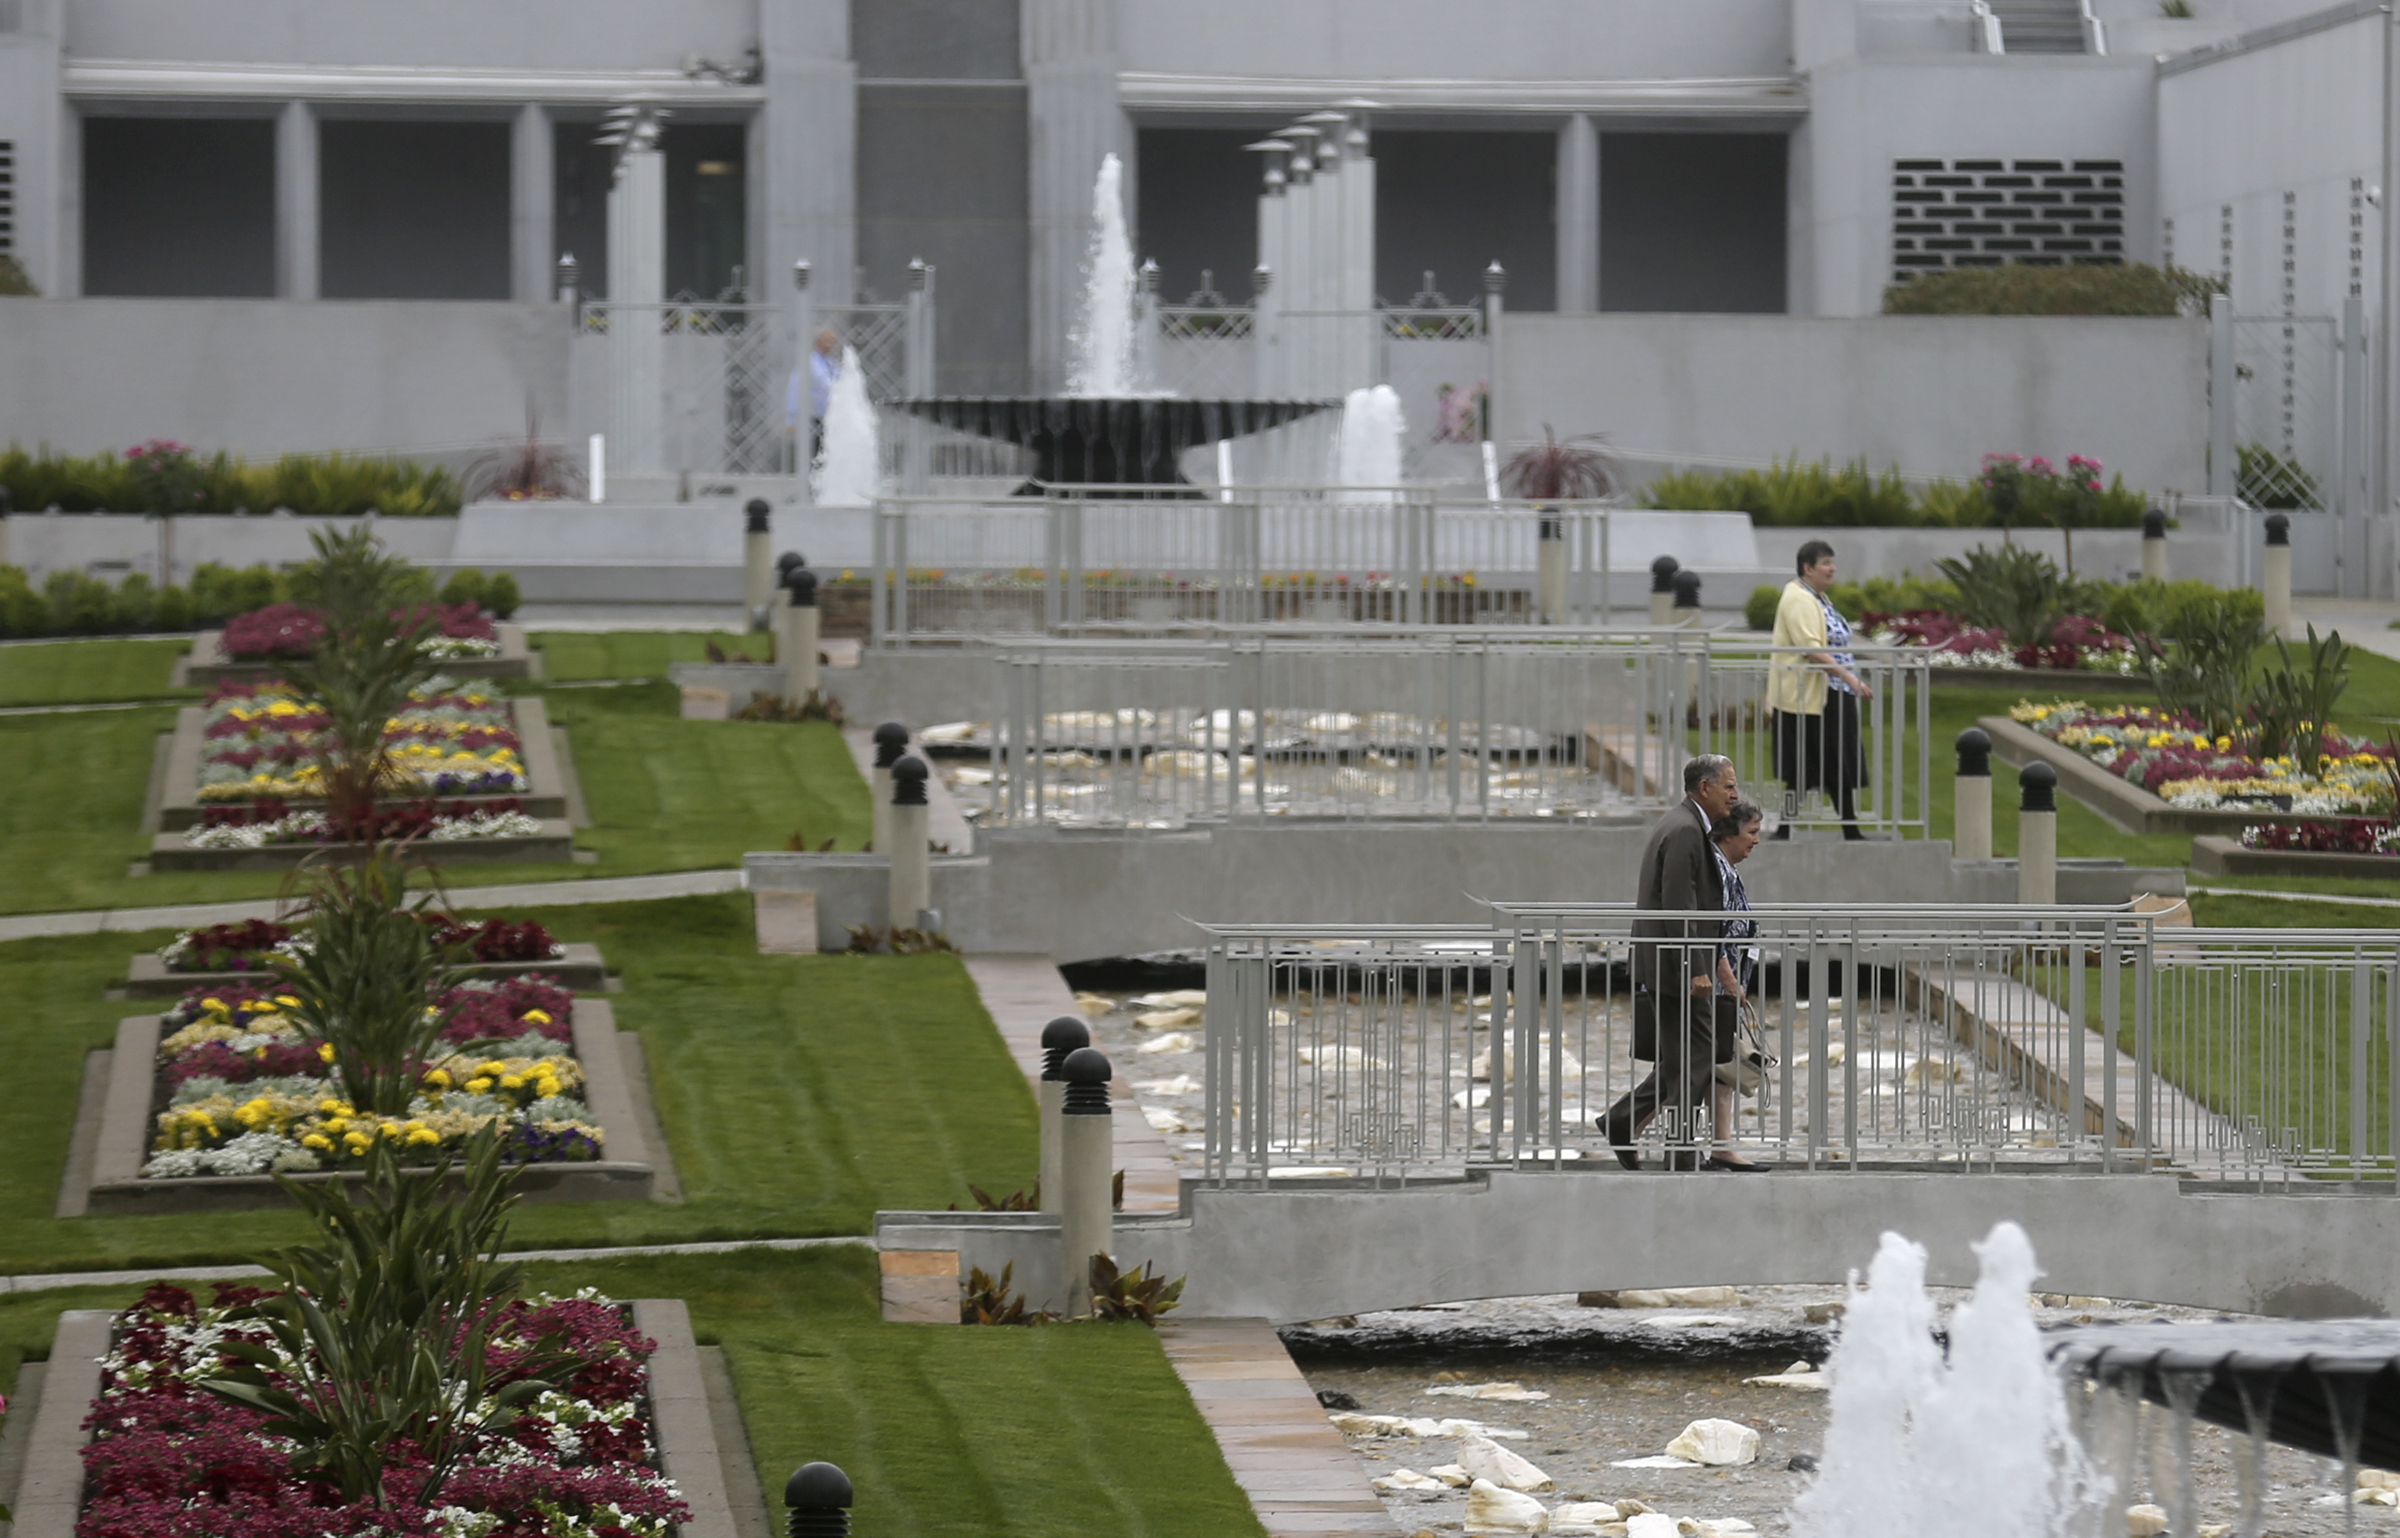 People walk on the grounds of the newly renovated Oakland California Temple, of The Church of Jesus Christ of Latter-day Saints, in Oakland, Calif., on Monday, May 6, 2019.